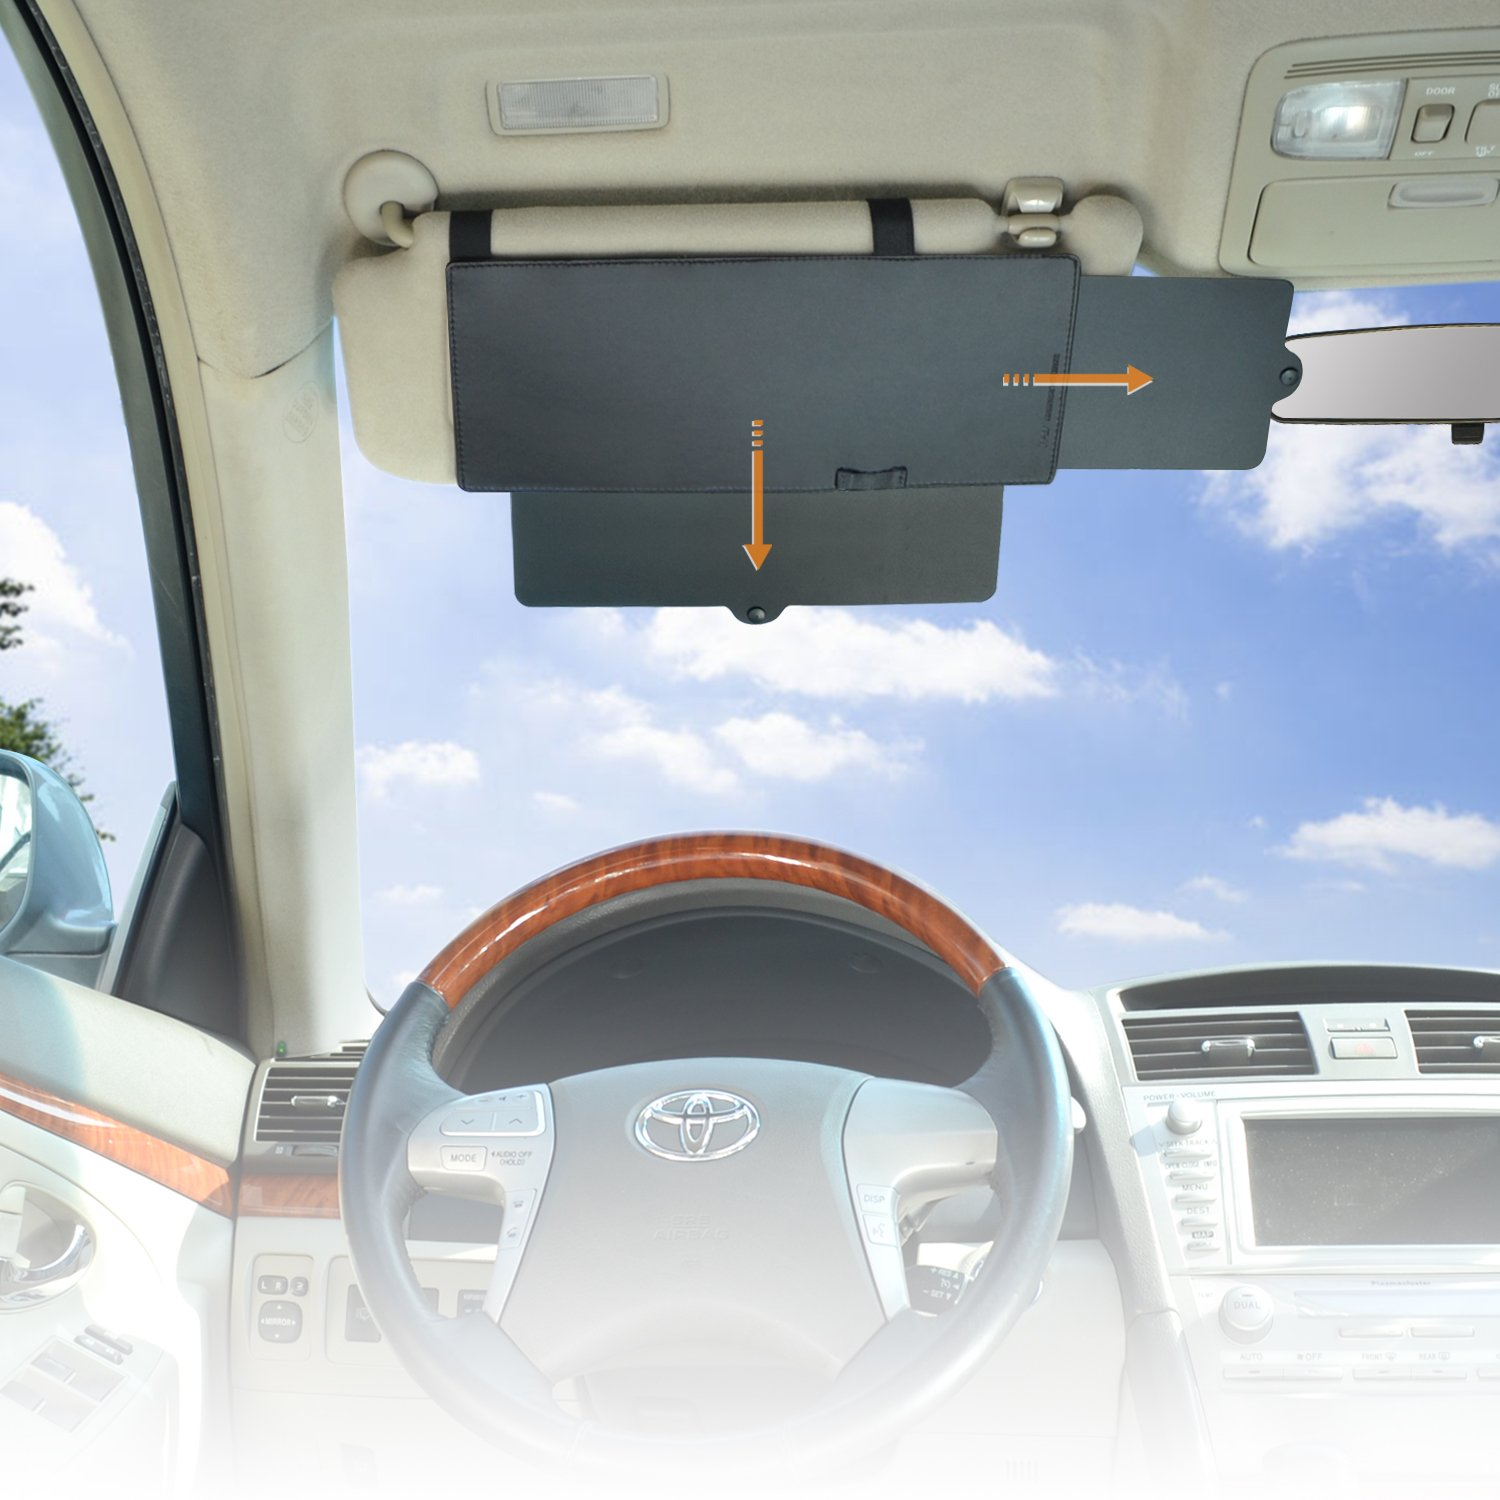 WANPOOL Car Visor Anti-Glare Sunshade Extender for Front Seat Driver or Passenger - 1 Piece by WANPOOL